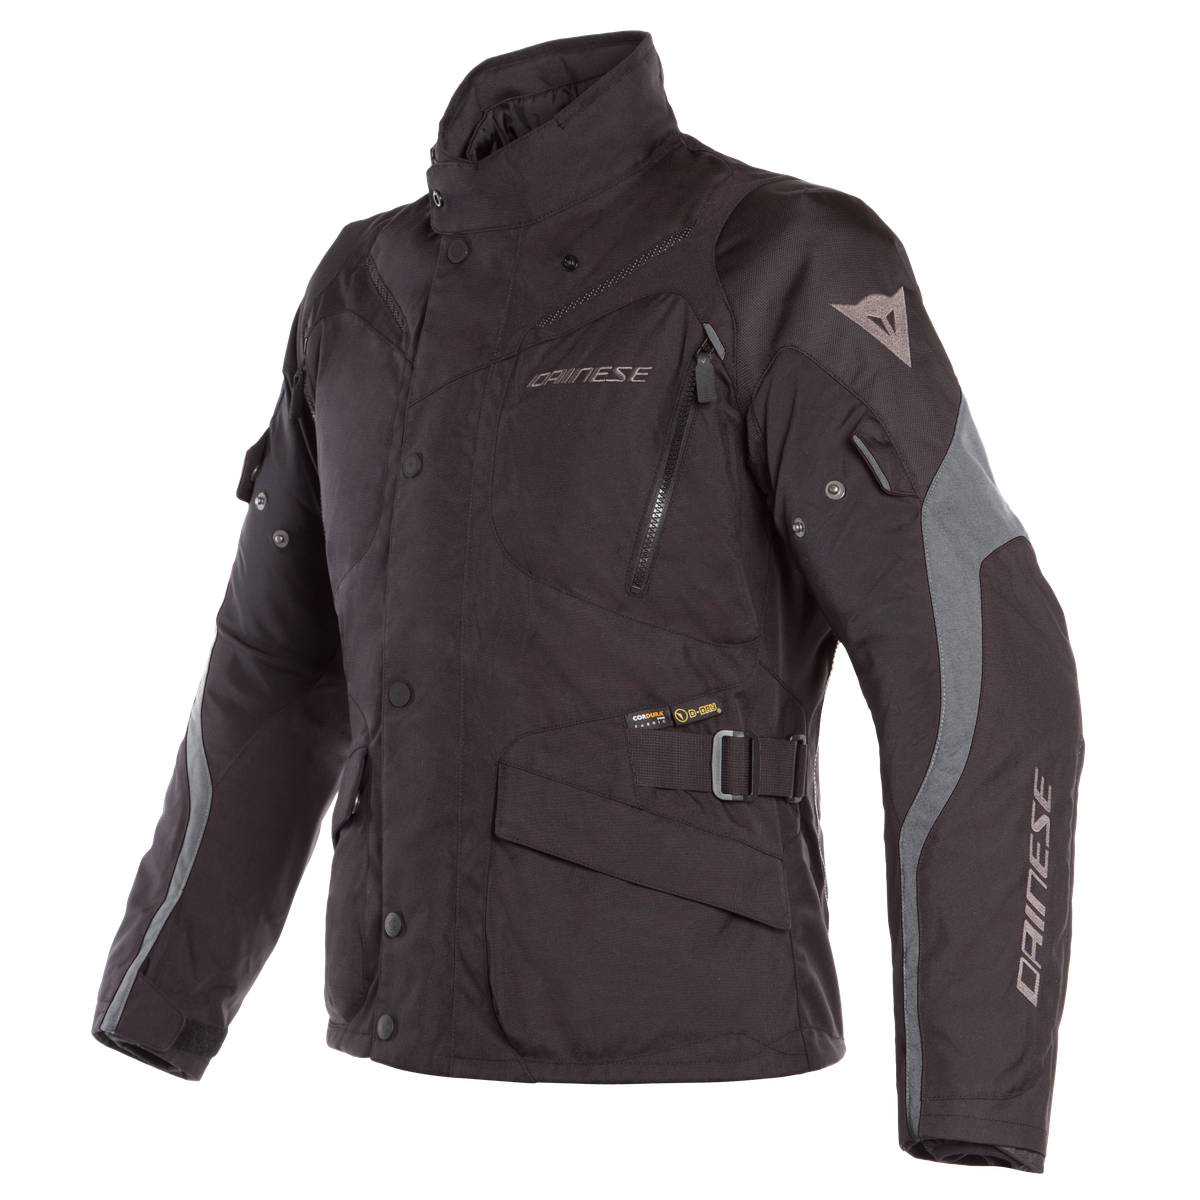 GIACCA MOTO TOURING URBAN IN CORDURA D-DRY Dainese TEMPEST 2 Black/Black/Ebony